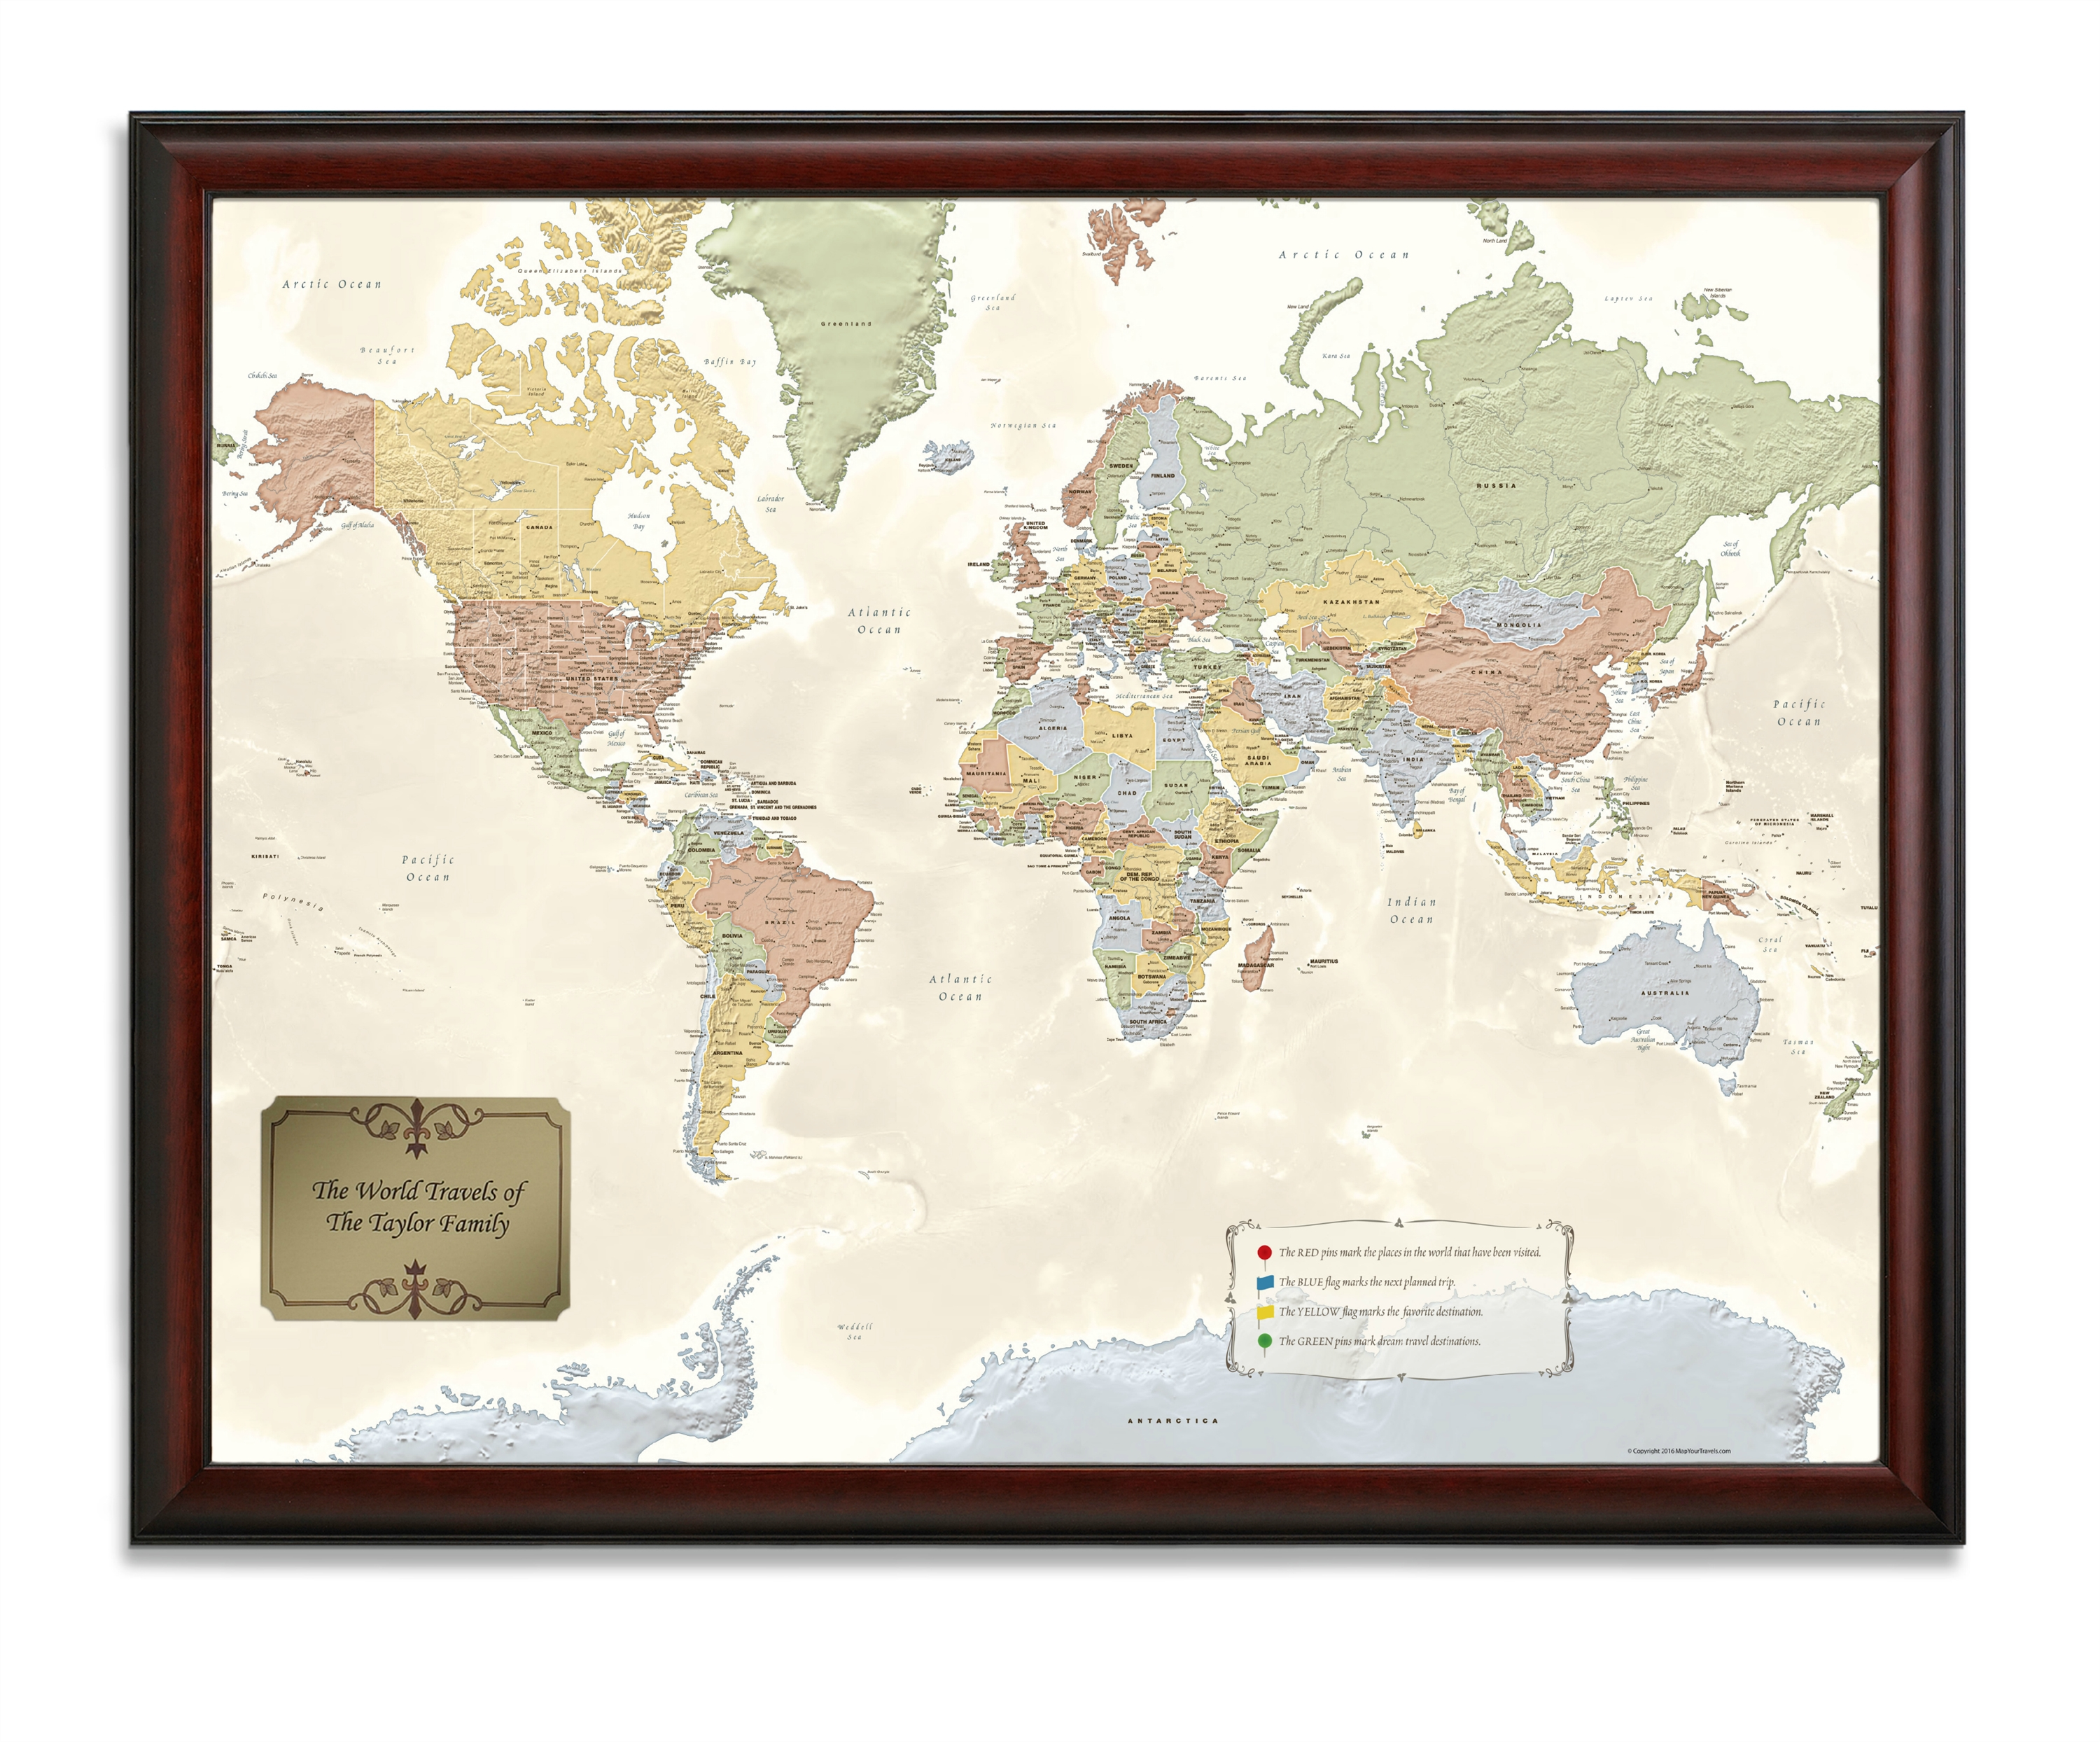 World traveler map personalized from onlyglobes free shipping alternative views gumiabroncs Image collections